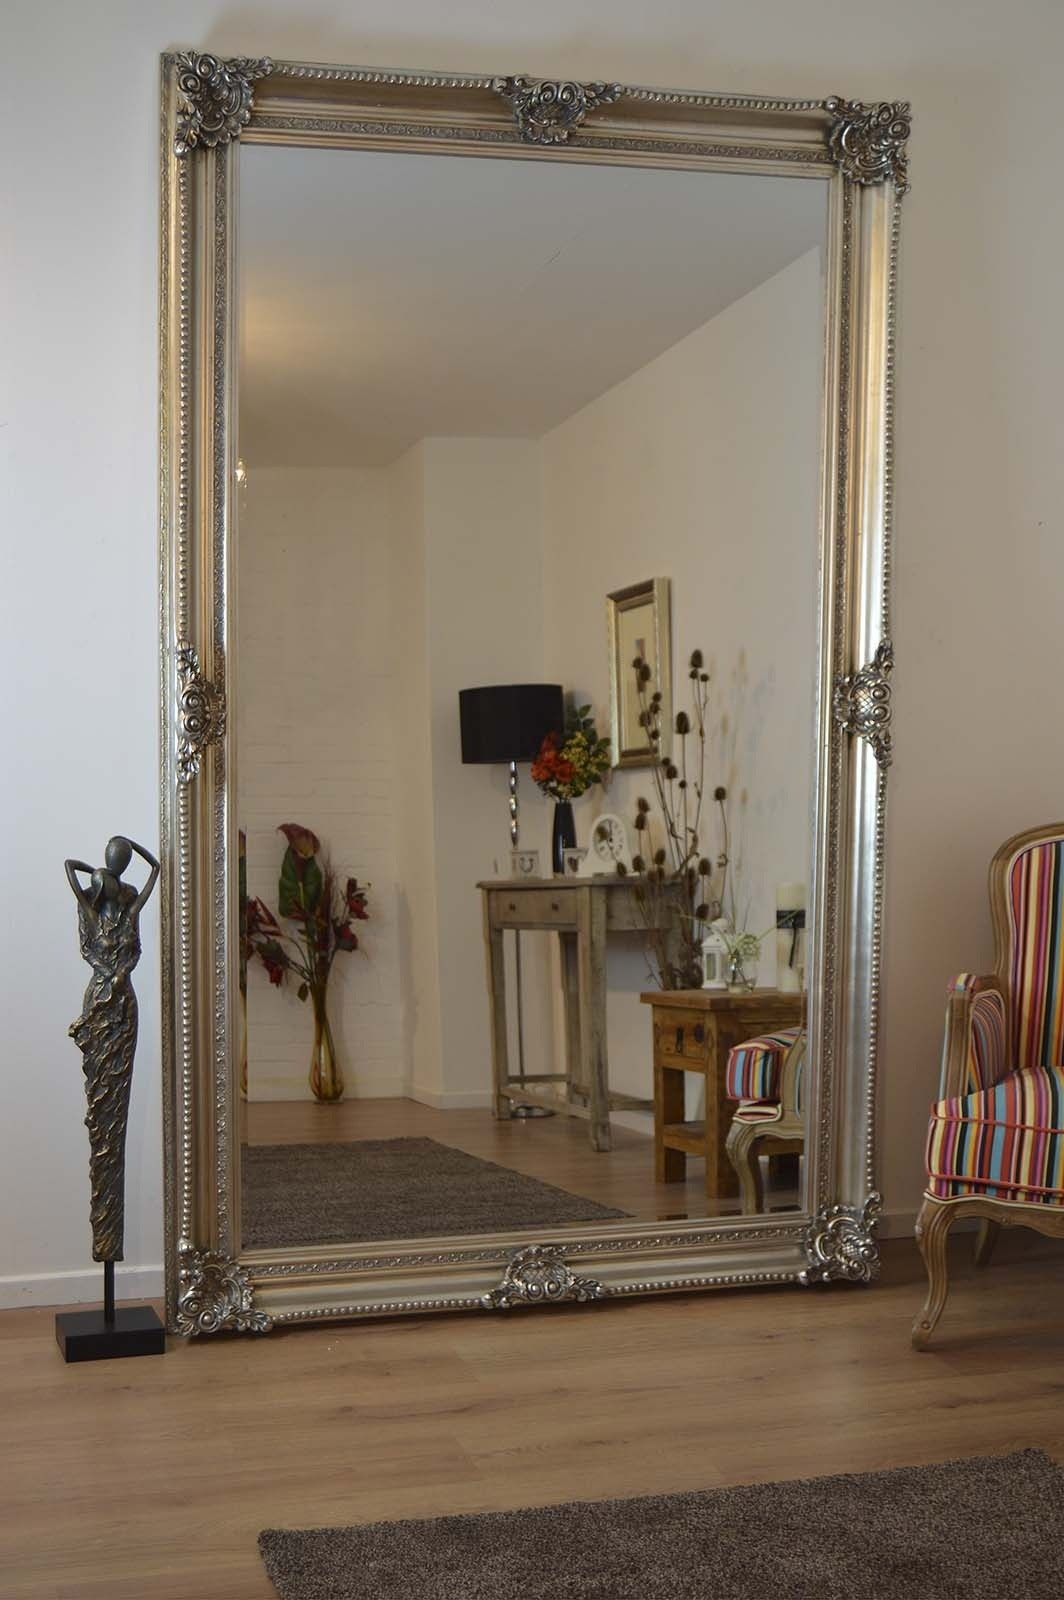 Classic Impression On Antique Wall Mirrors Vwho Inside Antique Style Mirrors Wall (View 4 of 15)